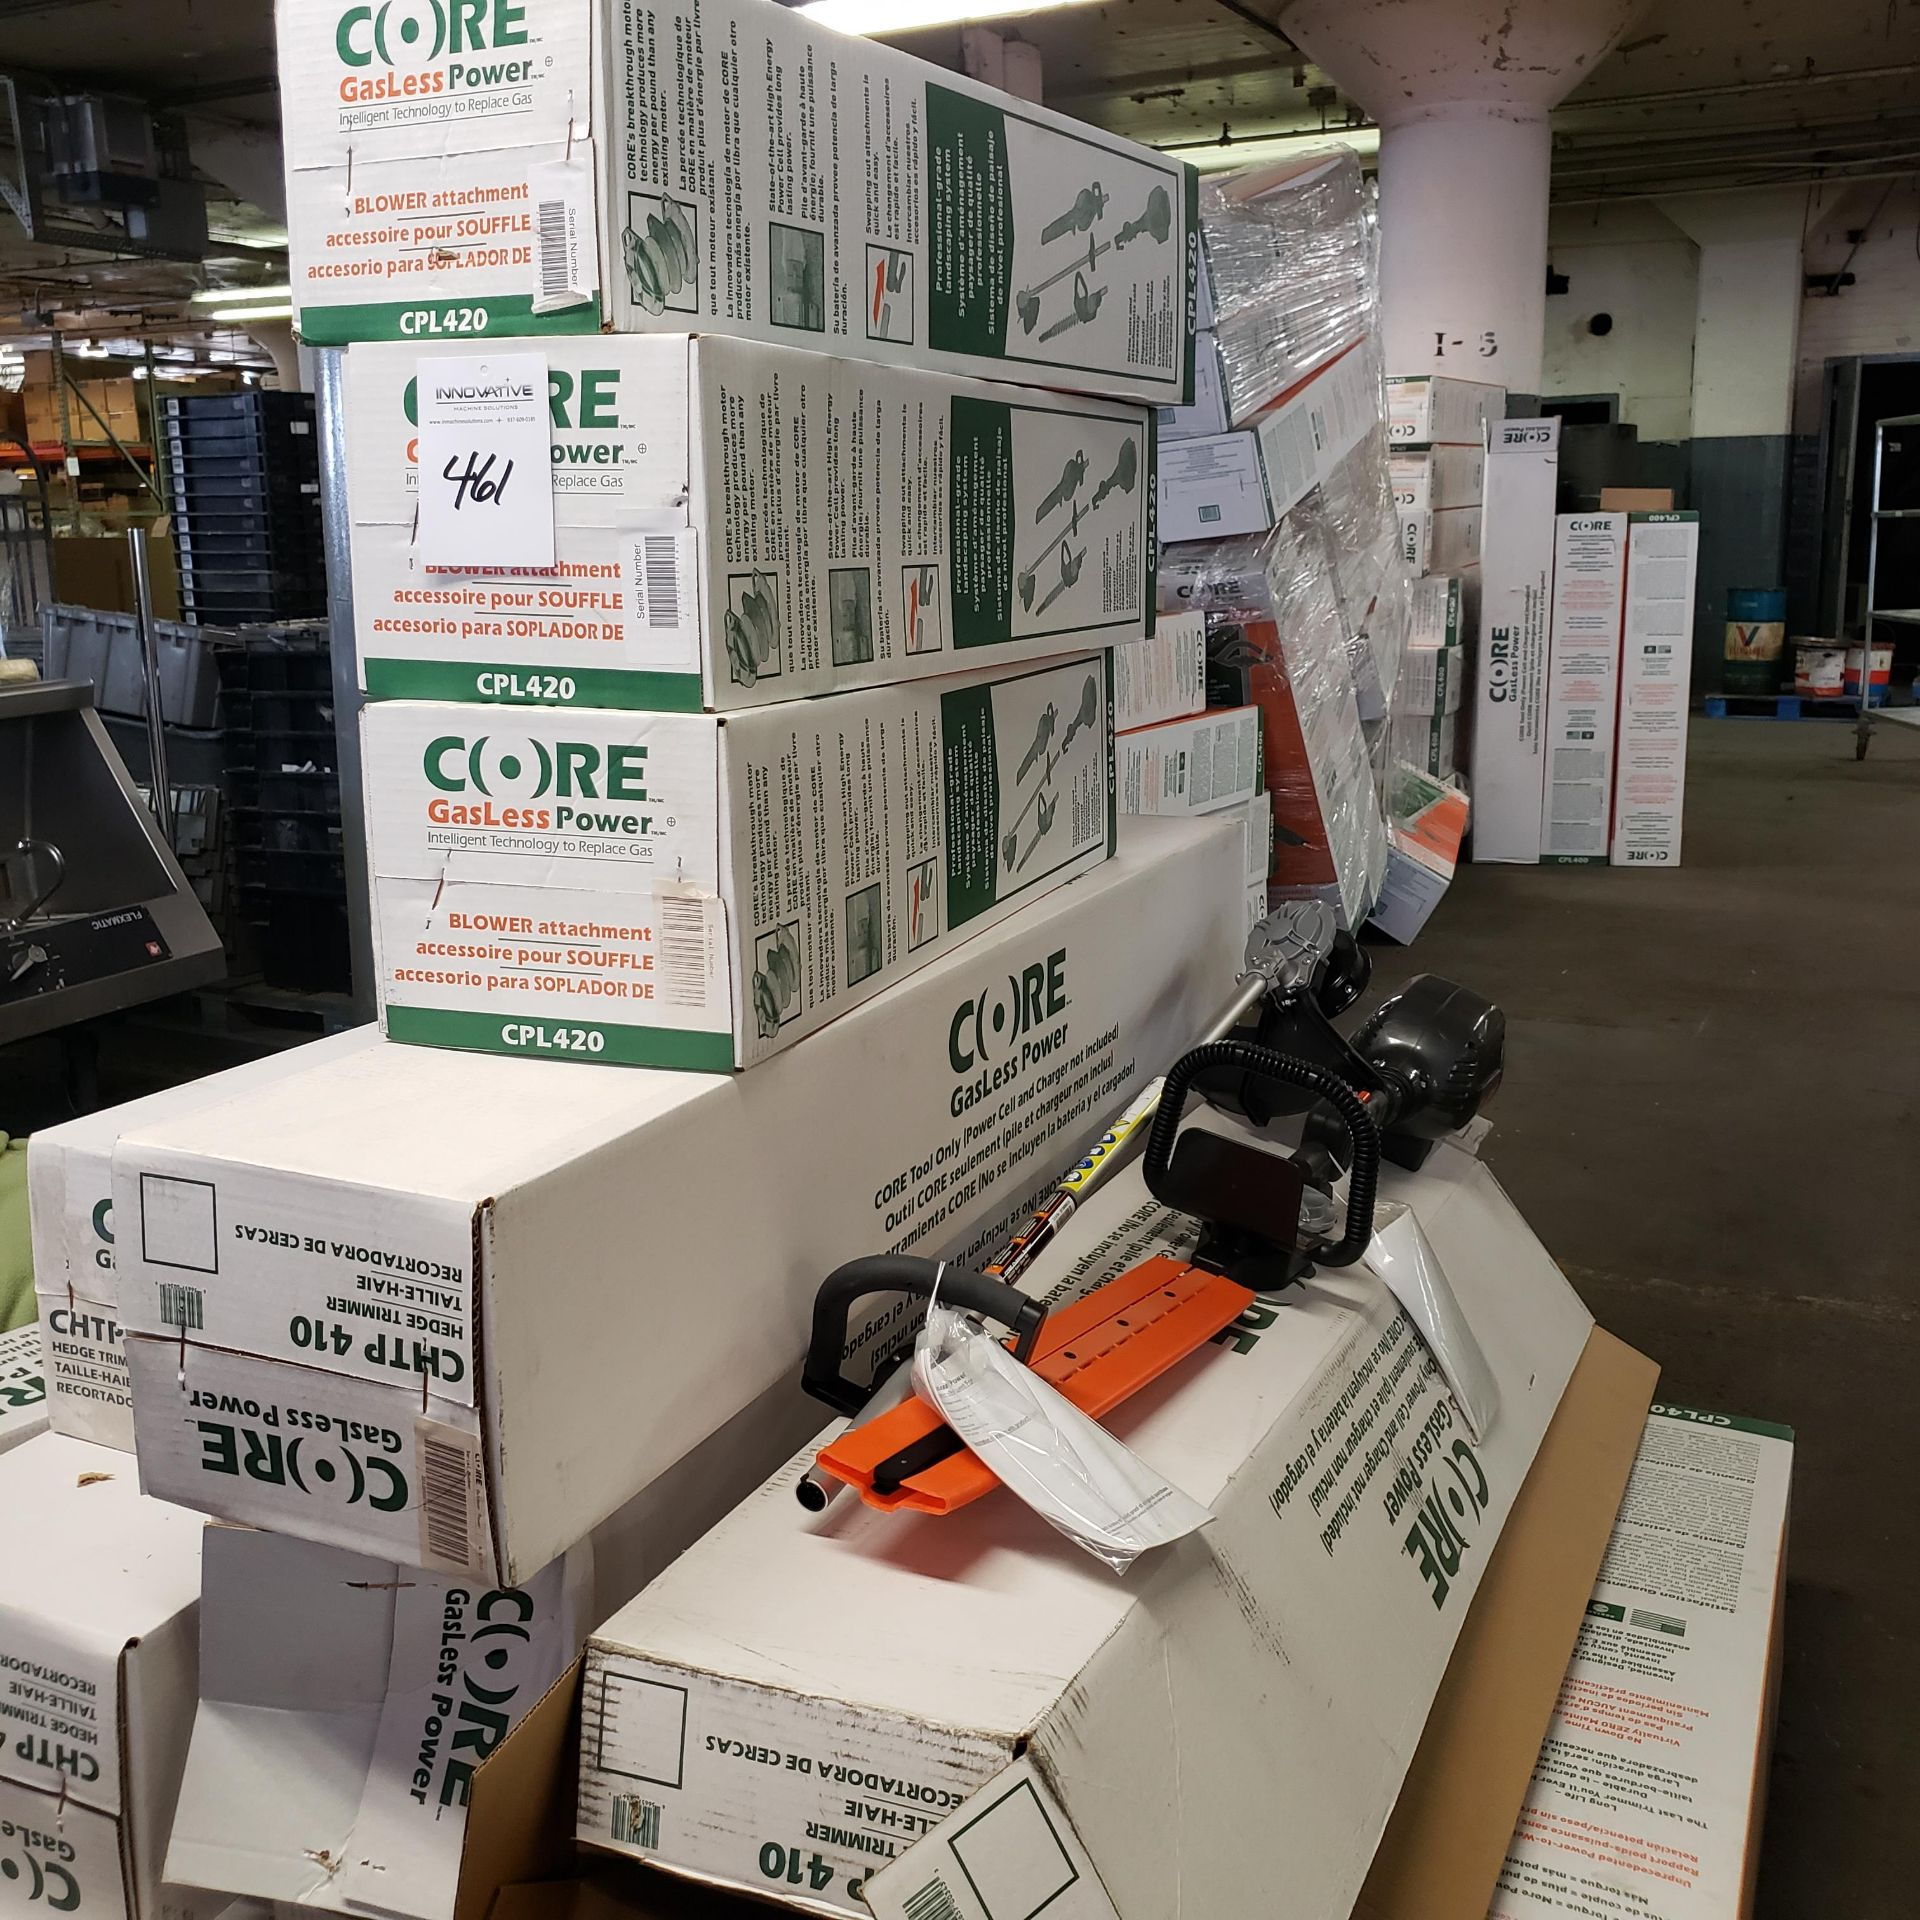 Assorted Core Gasless Power Blowers, Hedge Trimmers, and Line Trimmers